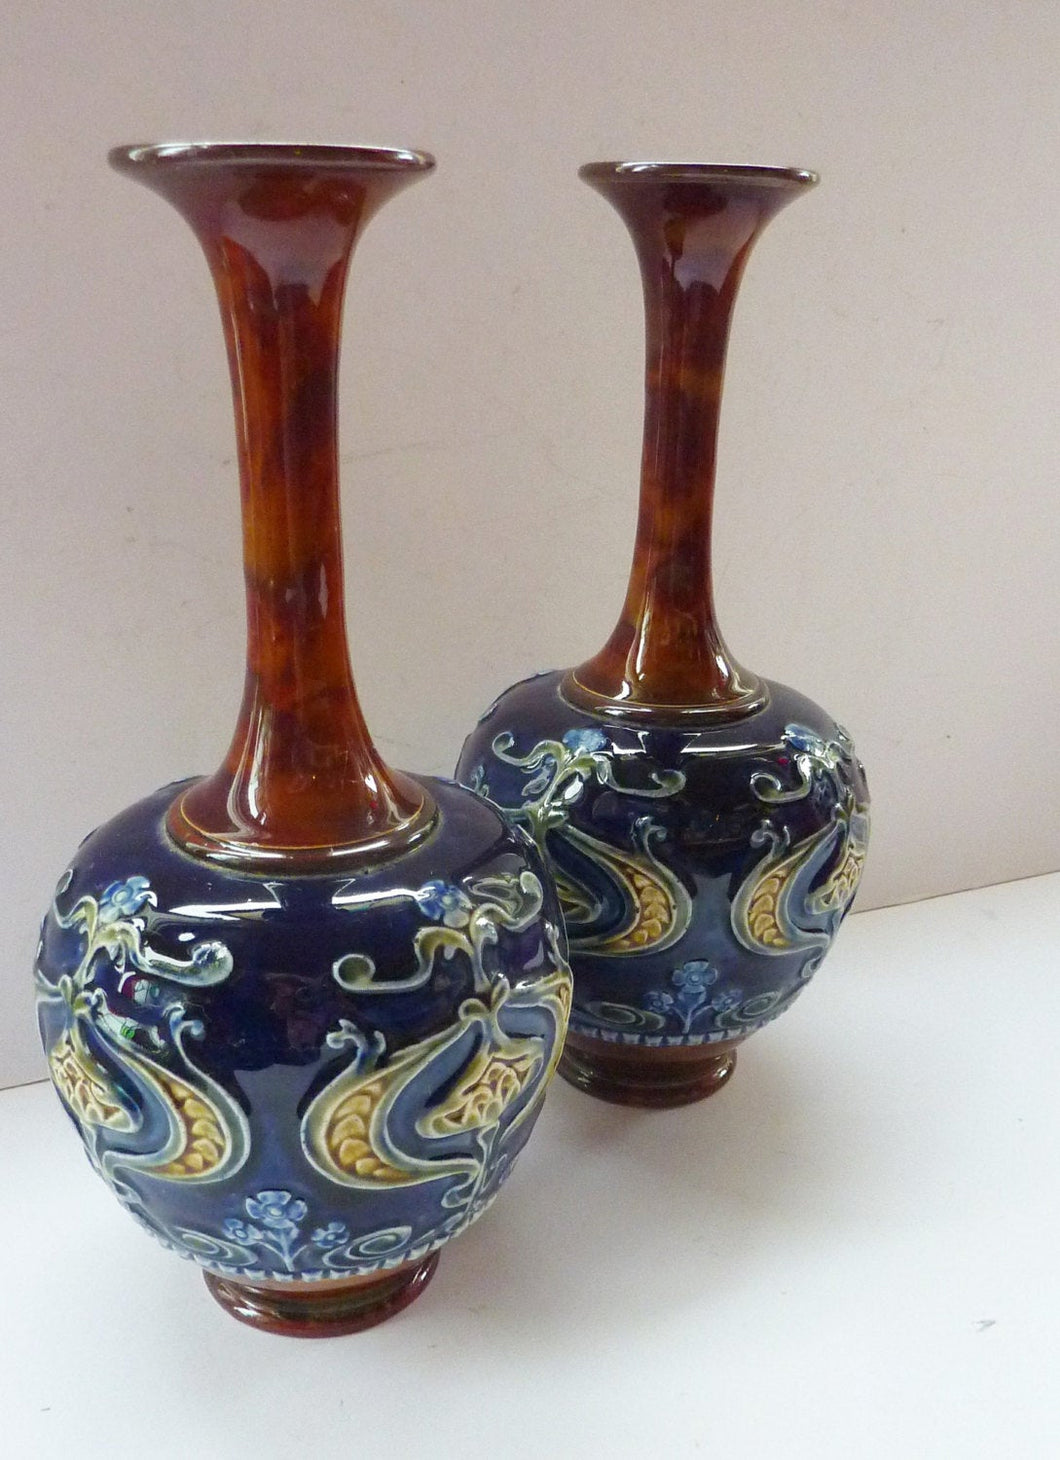 Matching Pair of ROYAL DOULTON LAMBETH Tube Lined Art Nouveau Faience Bottle / Trumpet Vases